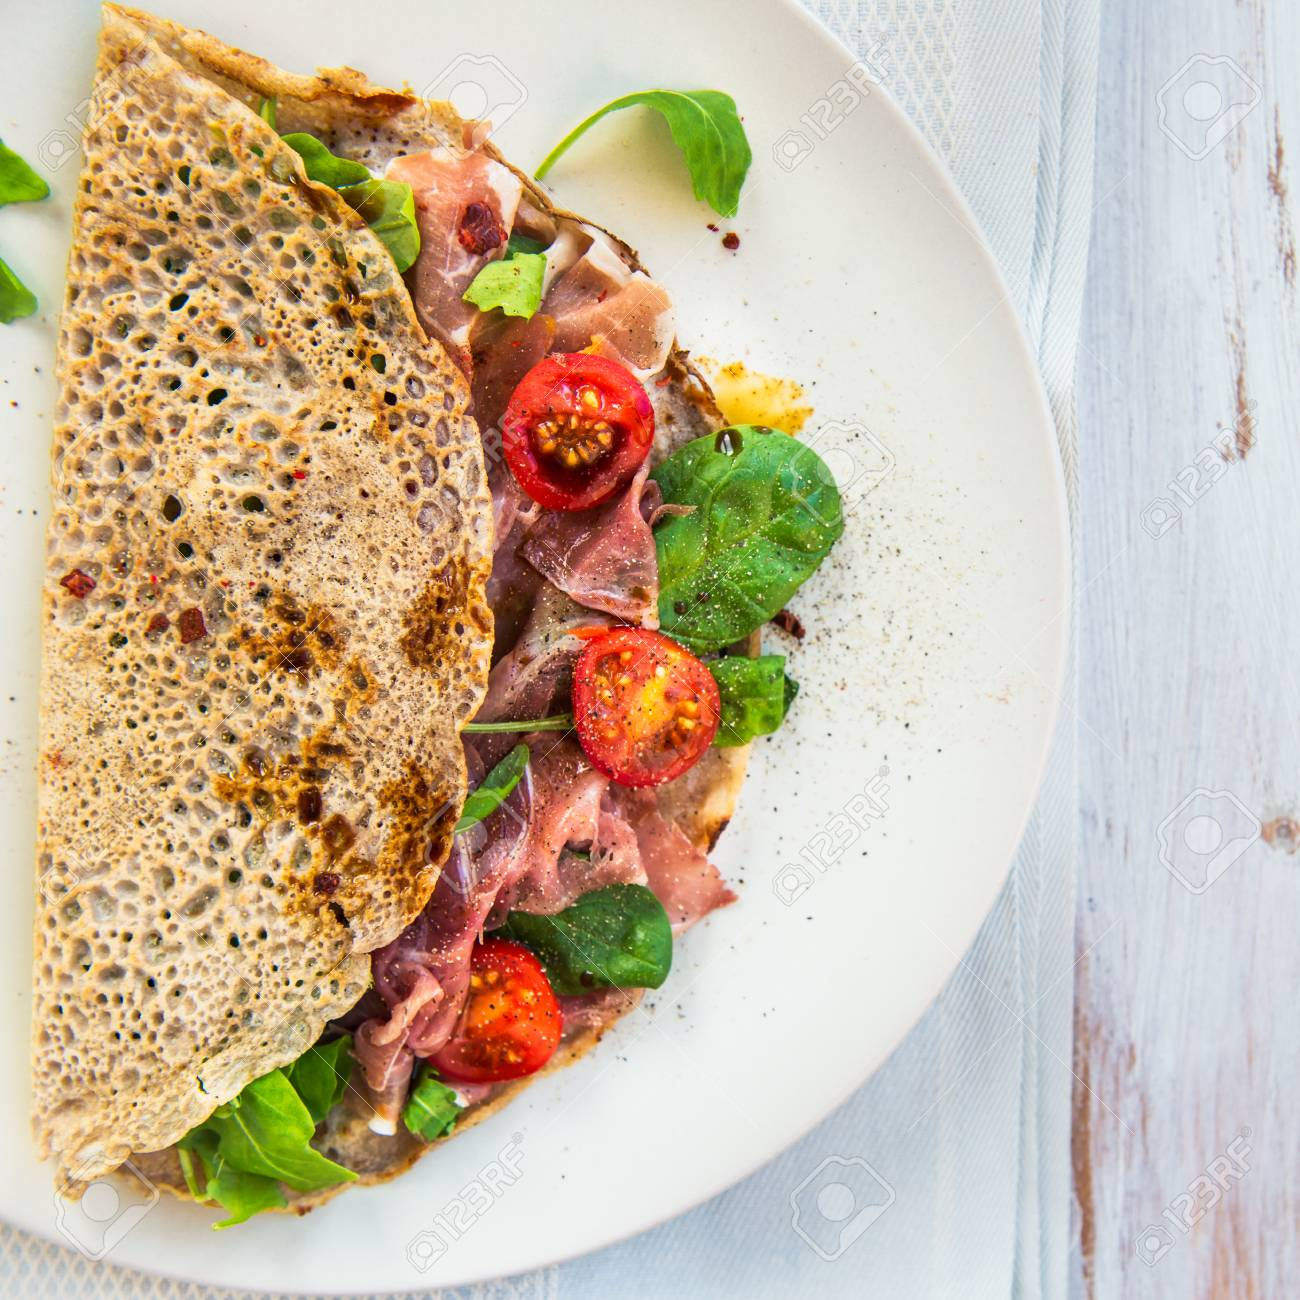 Savoury Buckwheat Pancakes With Cherry Tomatoes Rocket Salad Stock Photo Picture And Royalty Free Image Image 68411762